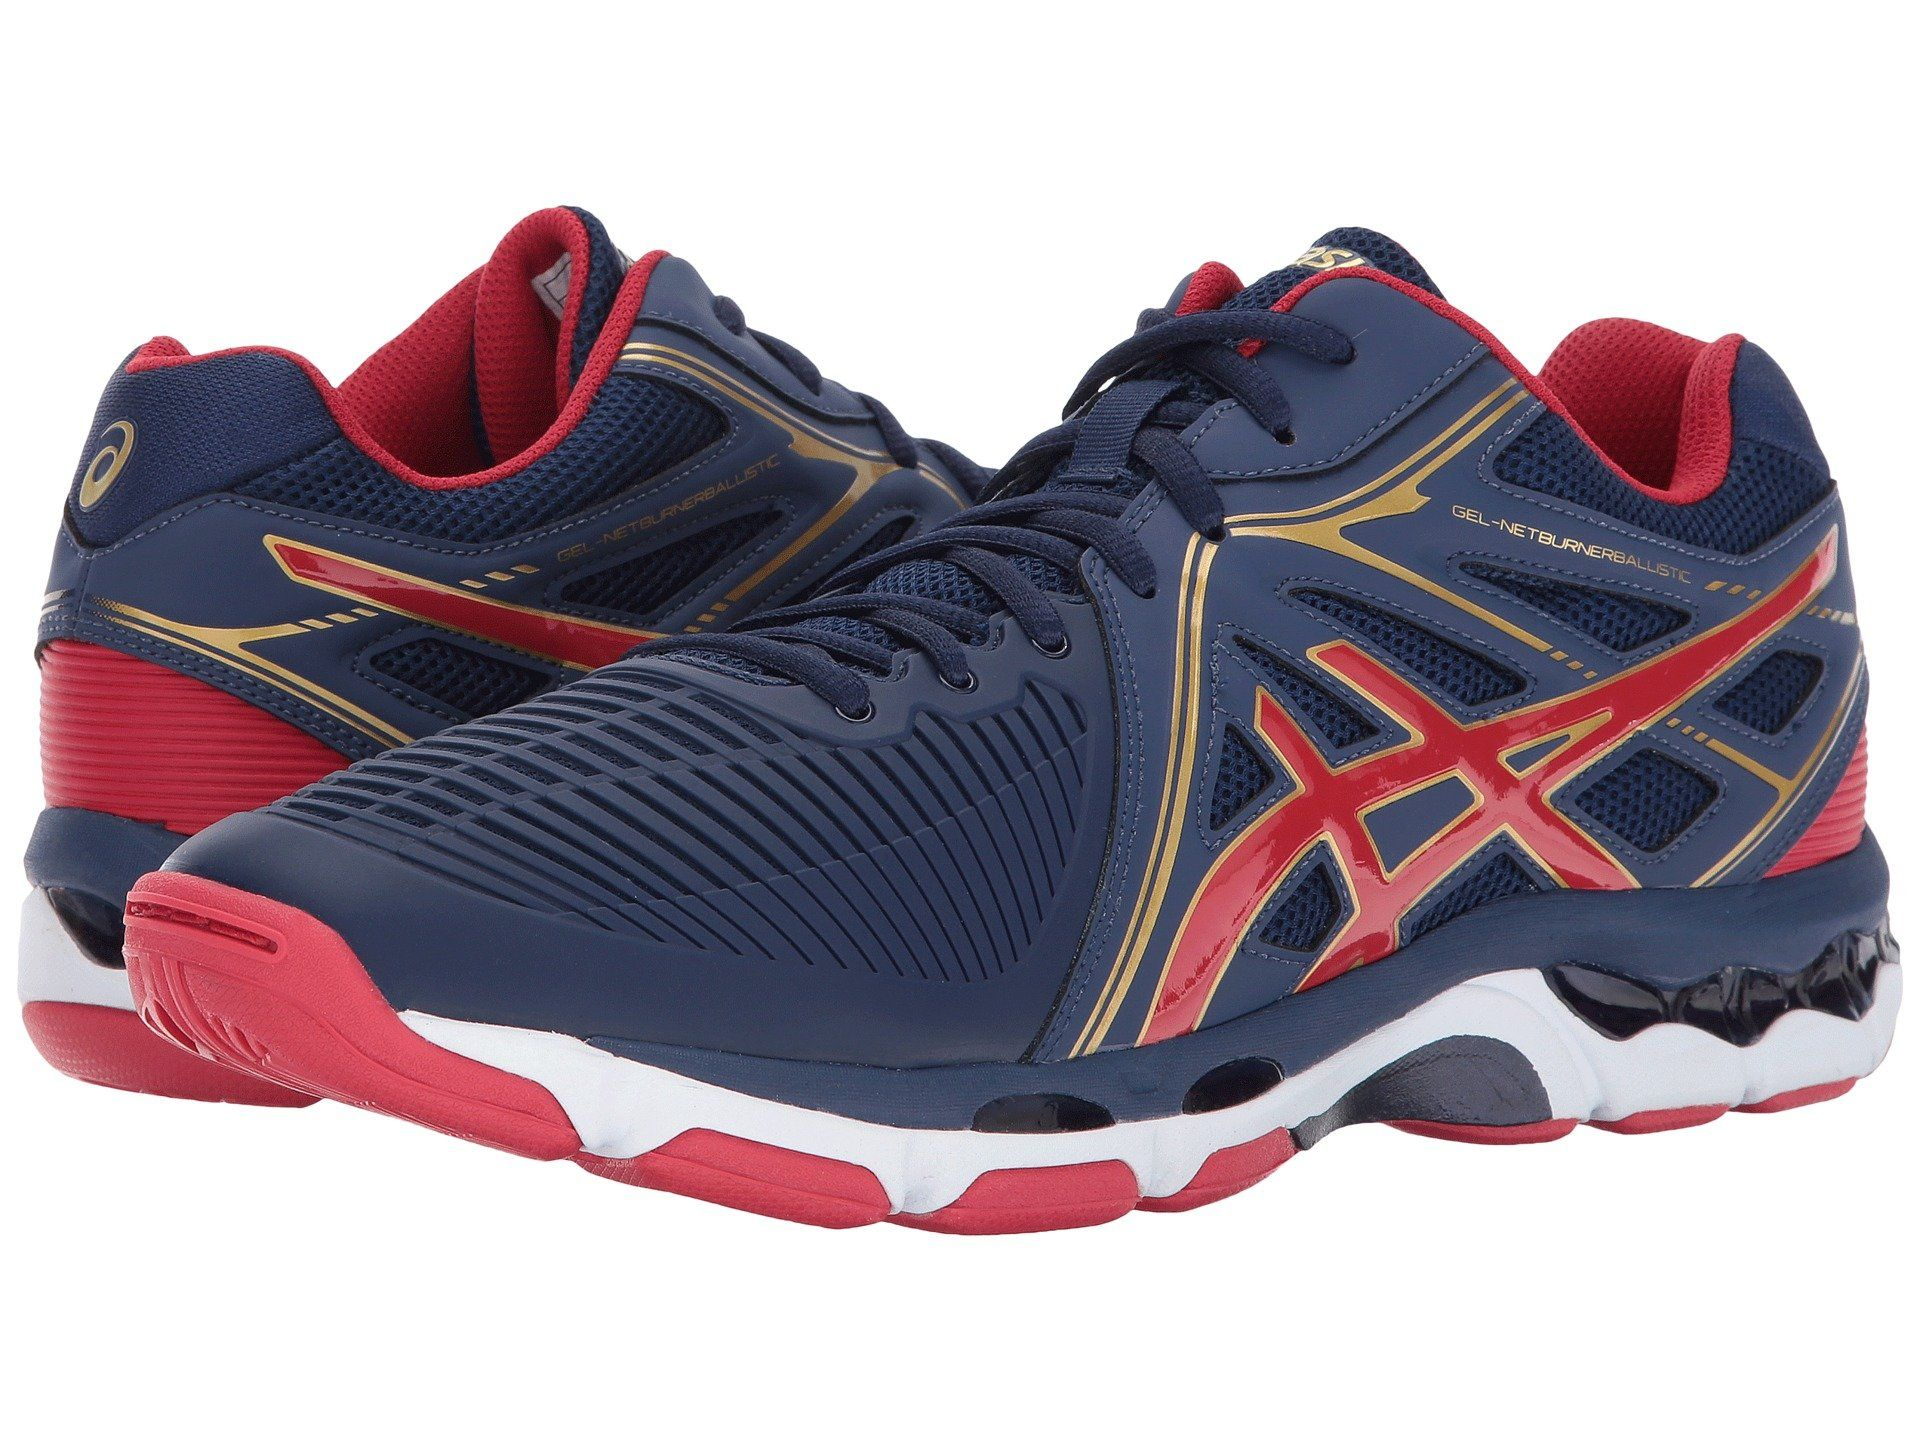 Gel Netburner Ballistic Mt In Indigo Blue Prime Red Rich Gold Asics Volleyball Shoes Asics Volleyball Shoes